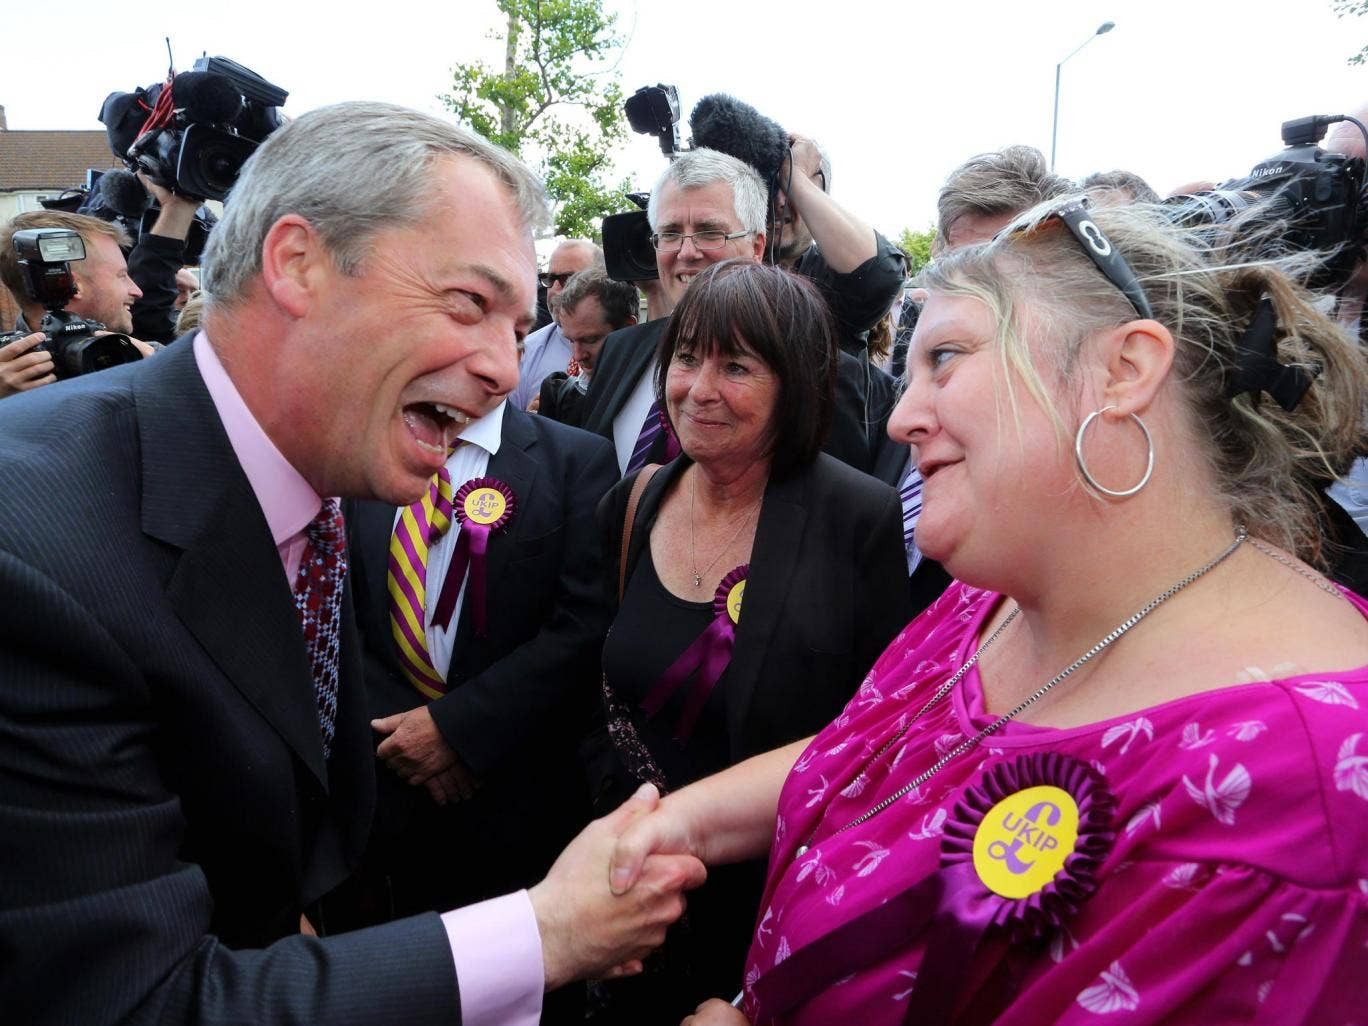 Nigel Farage in Essex yesterday; Ukip gained about 150 seats in the local elections